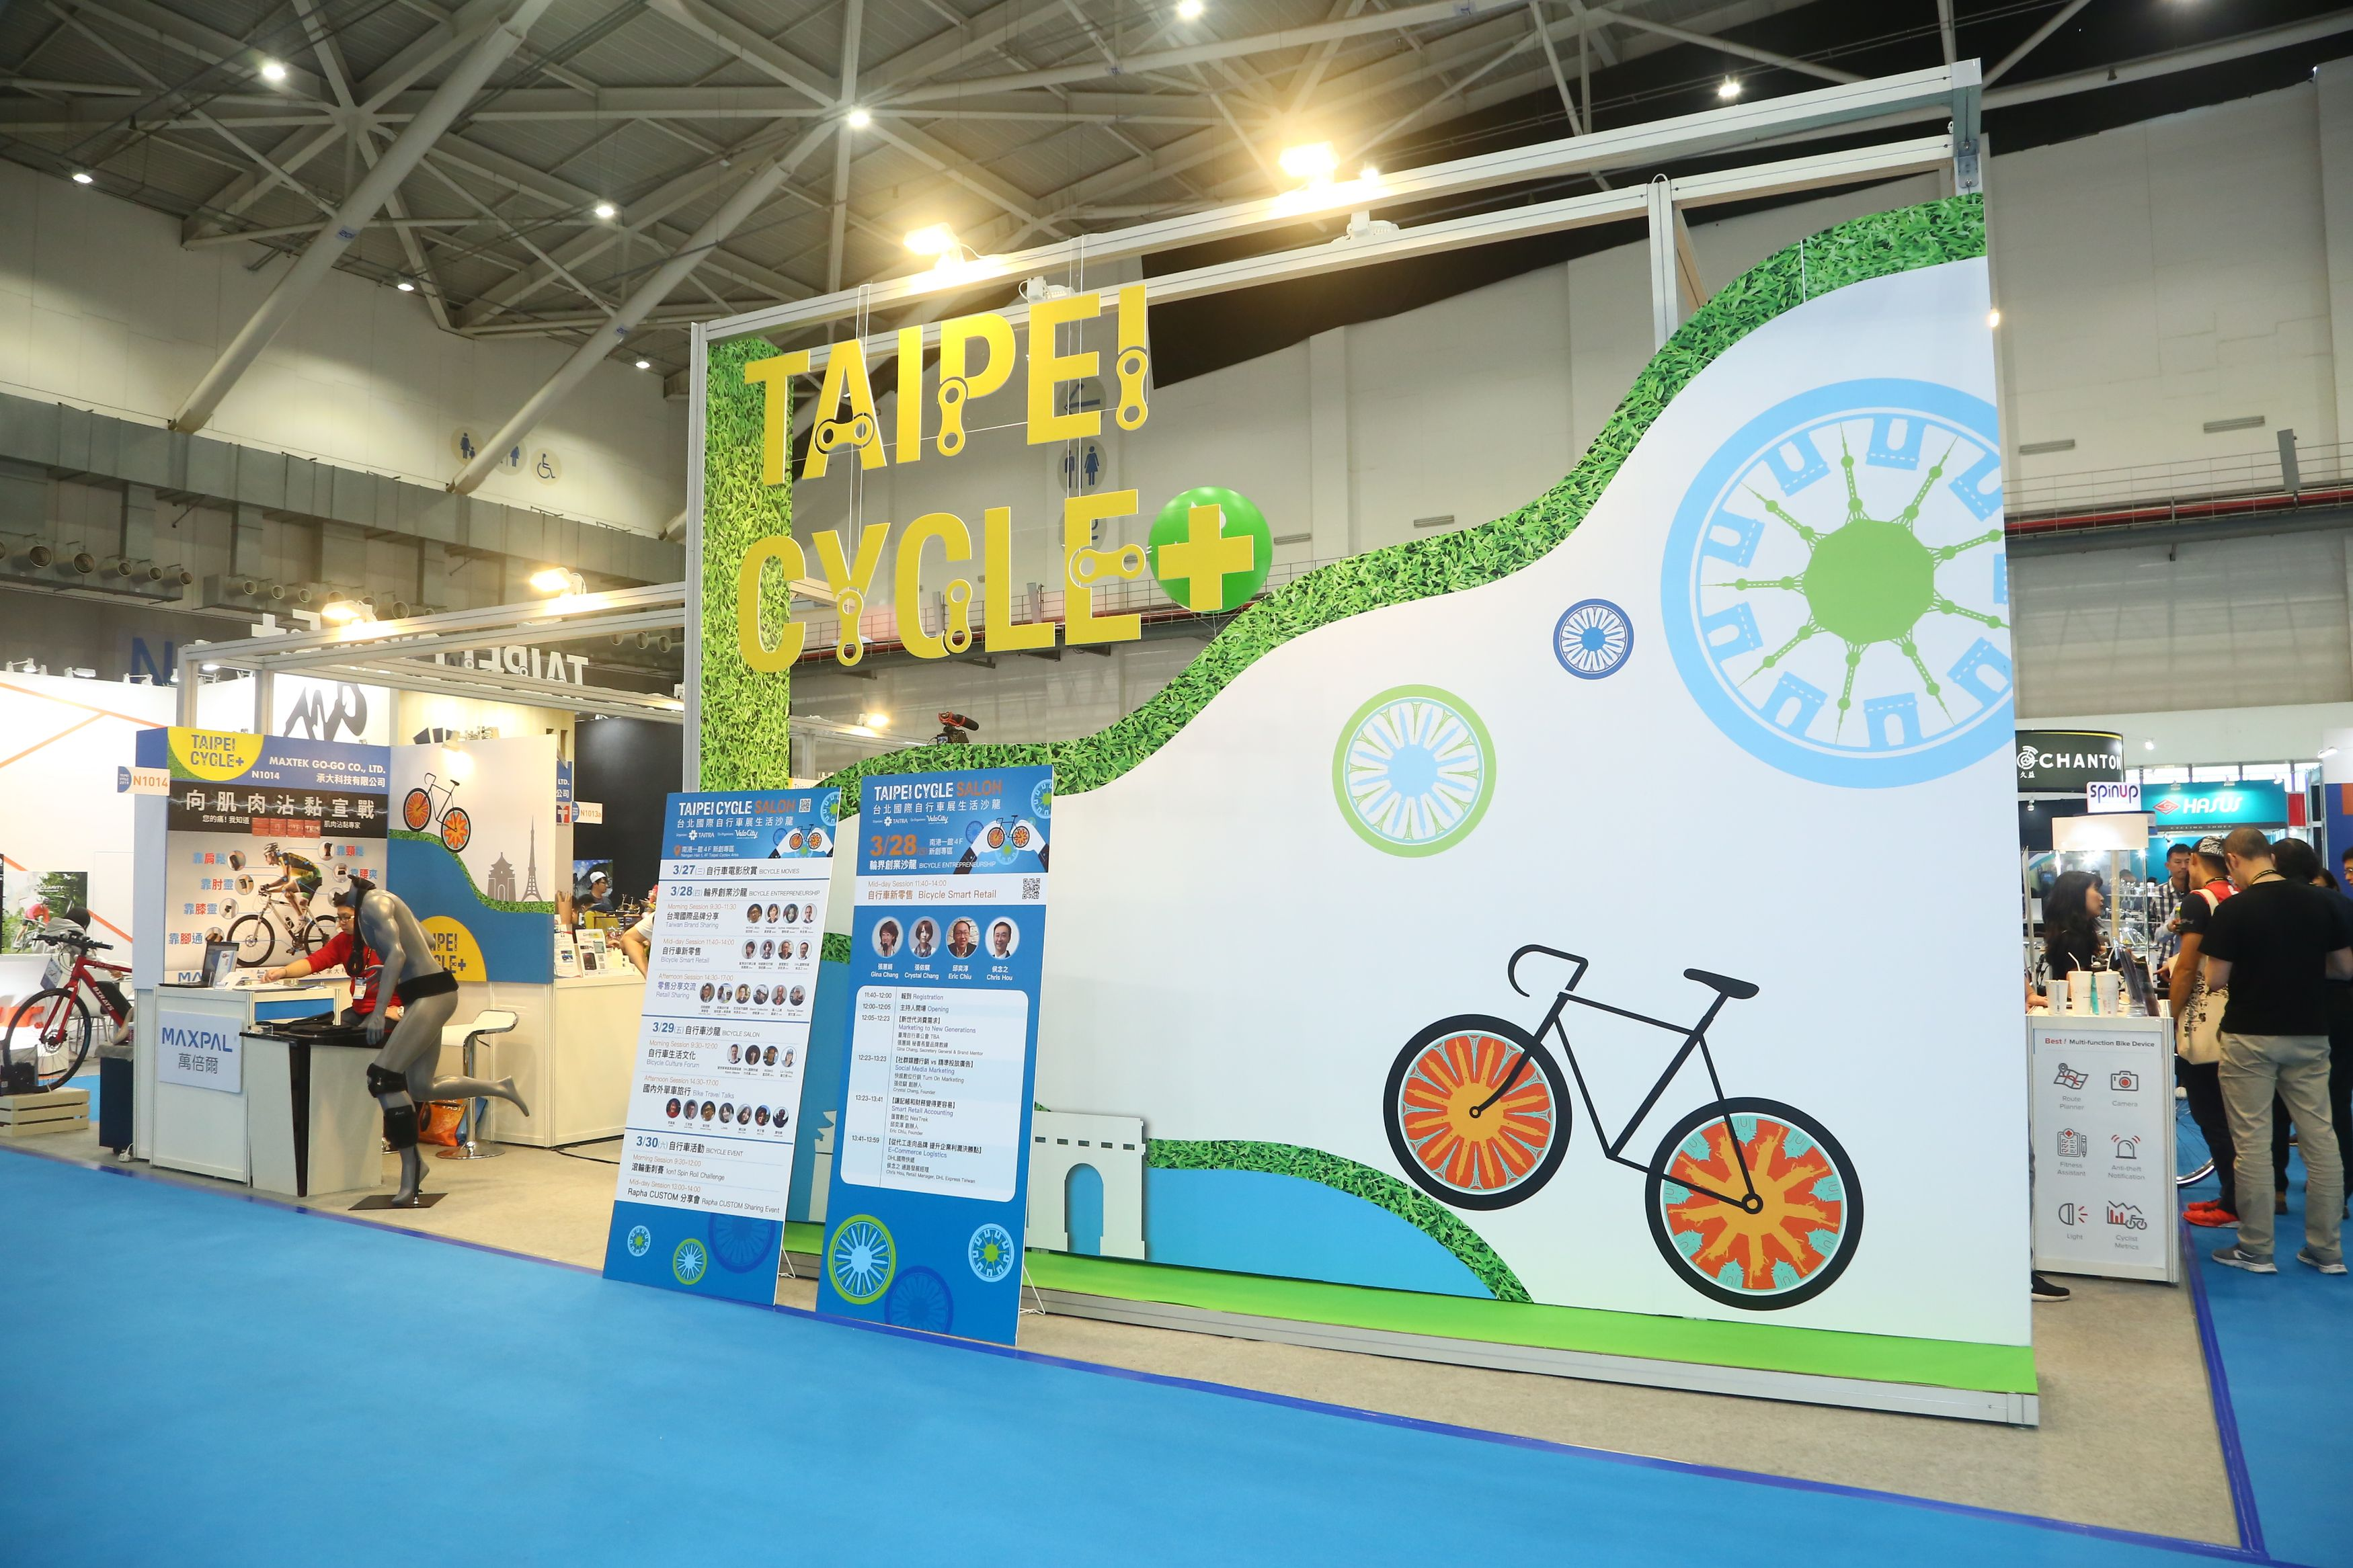 https://storage.googleapis.com/www.taiwantradeshow.com.tw/model/photo/CC/2019/PH00033625-name.jpg